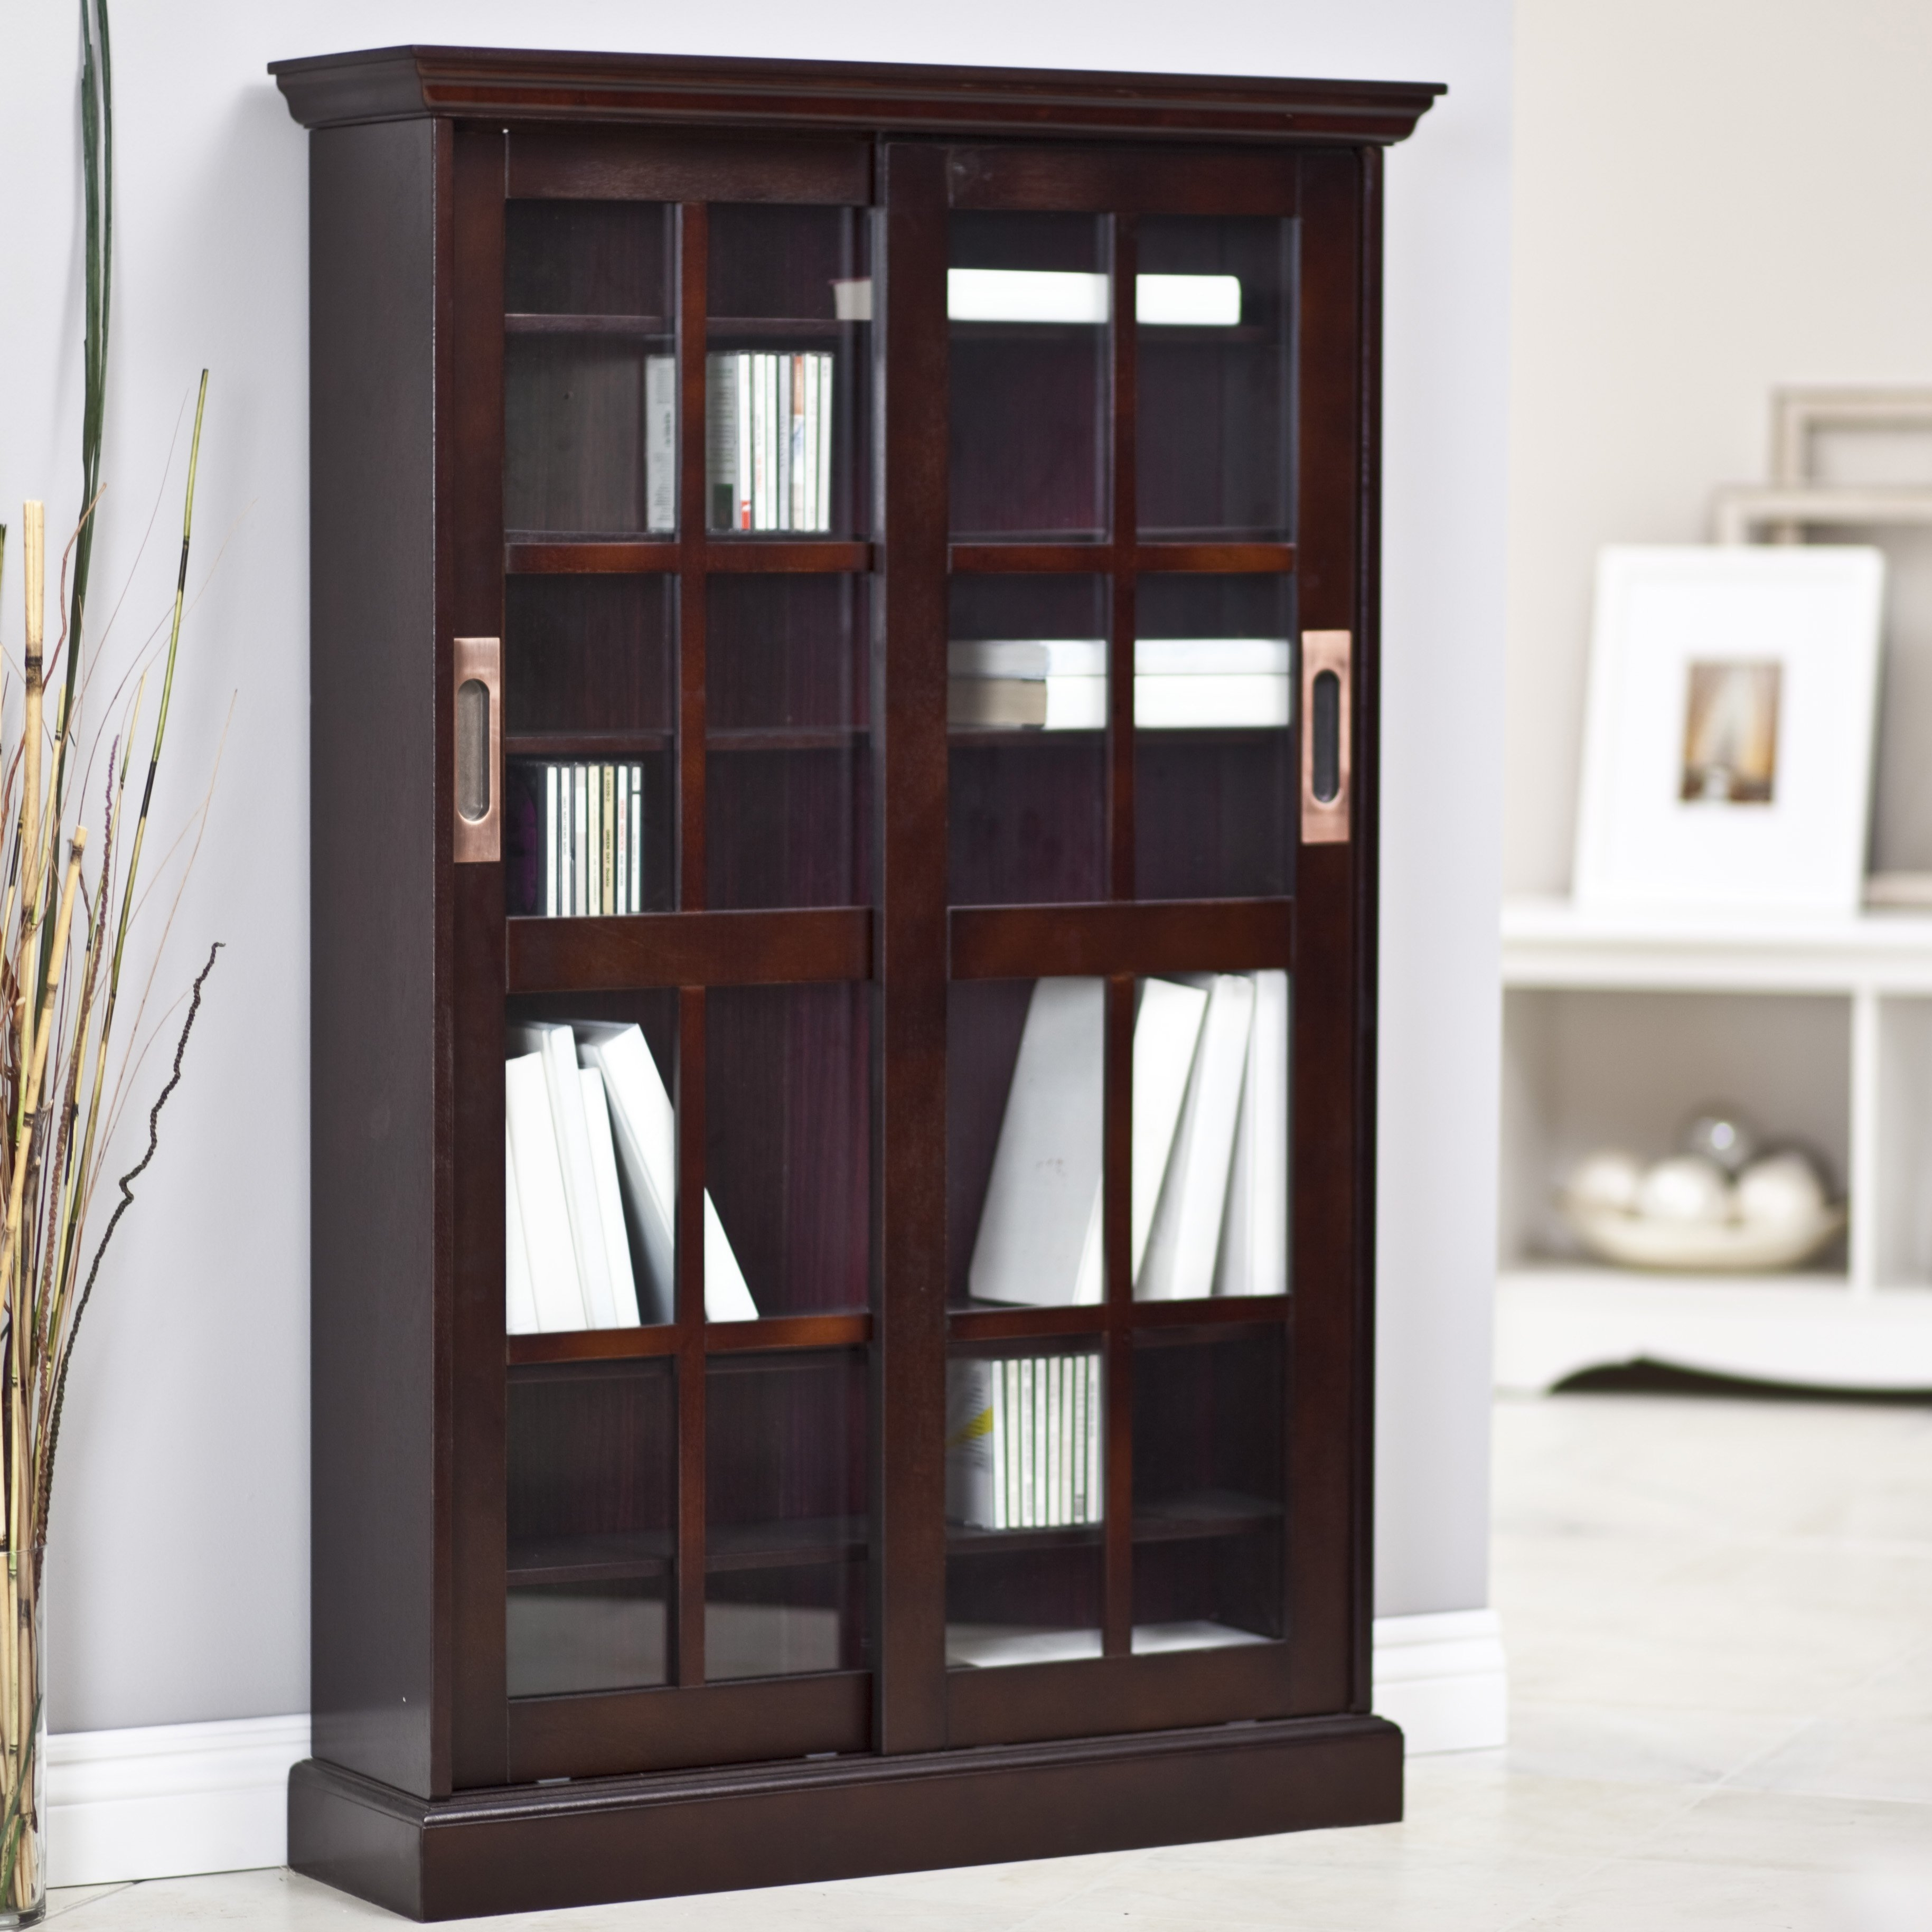 Furniture Brown Wooden Tall Media Cabinet With Sliding Glass Pertaining To Large Wooden Bookcases (View 4 of 15)